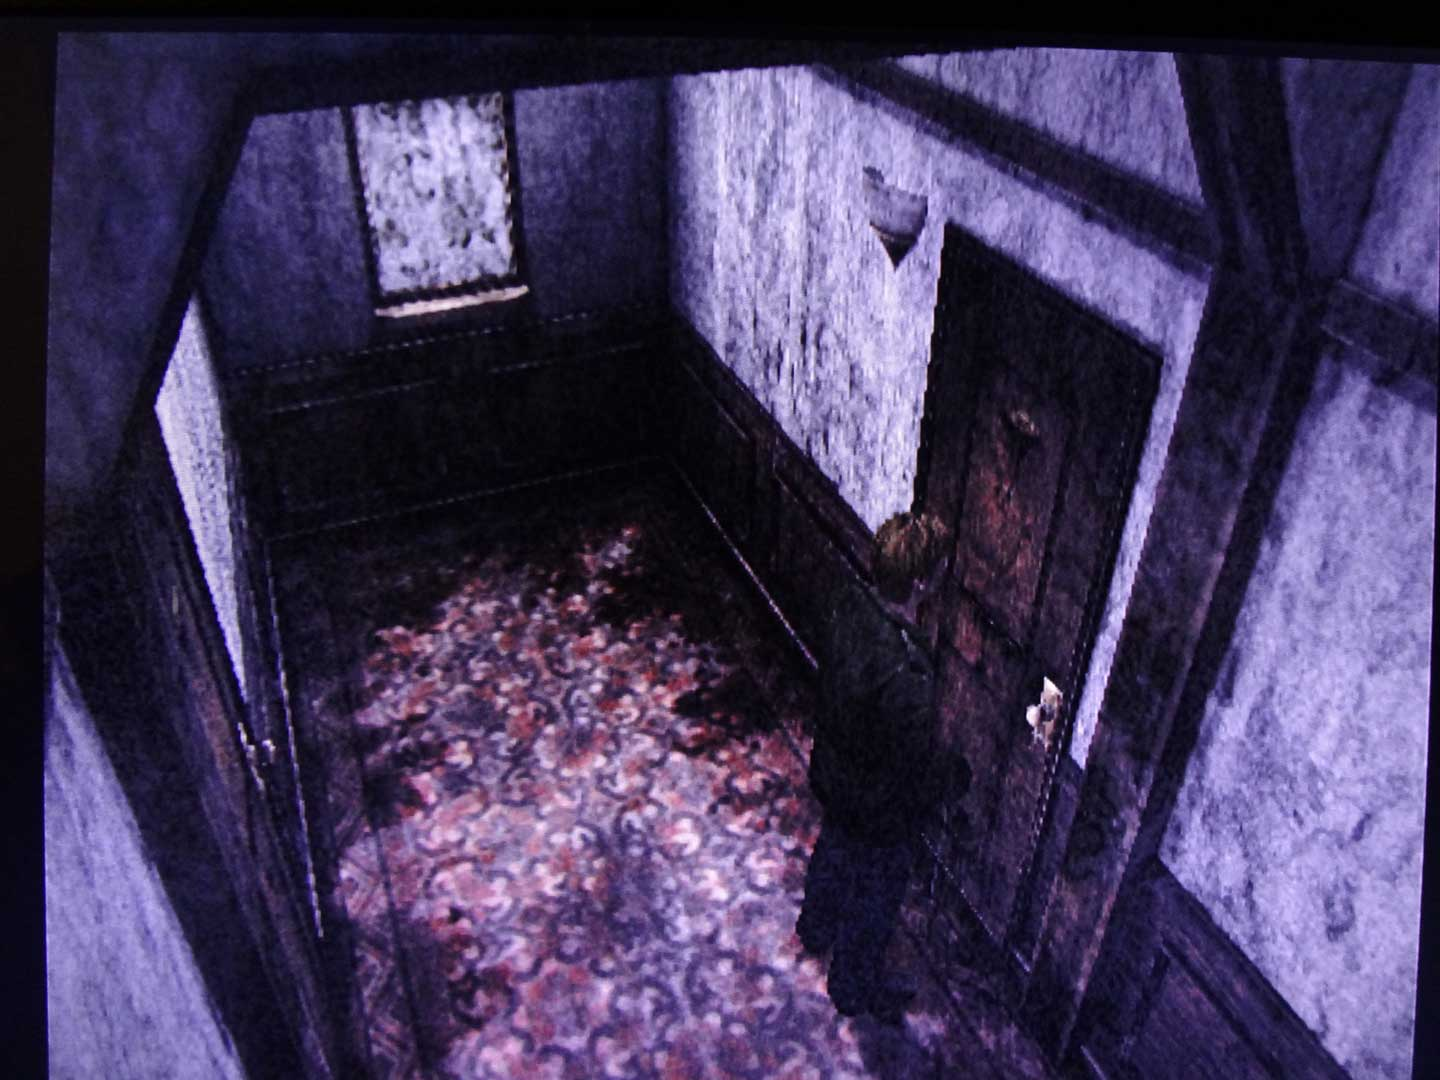 Silent Hill 2 - Lakeview Hotel hallway transition 1